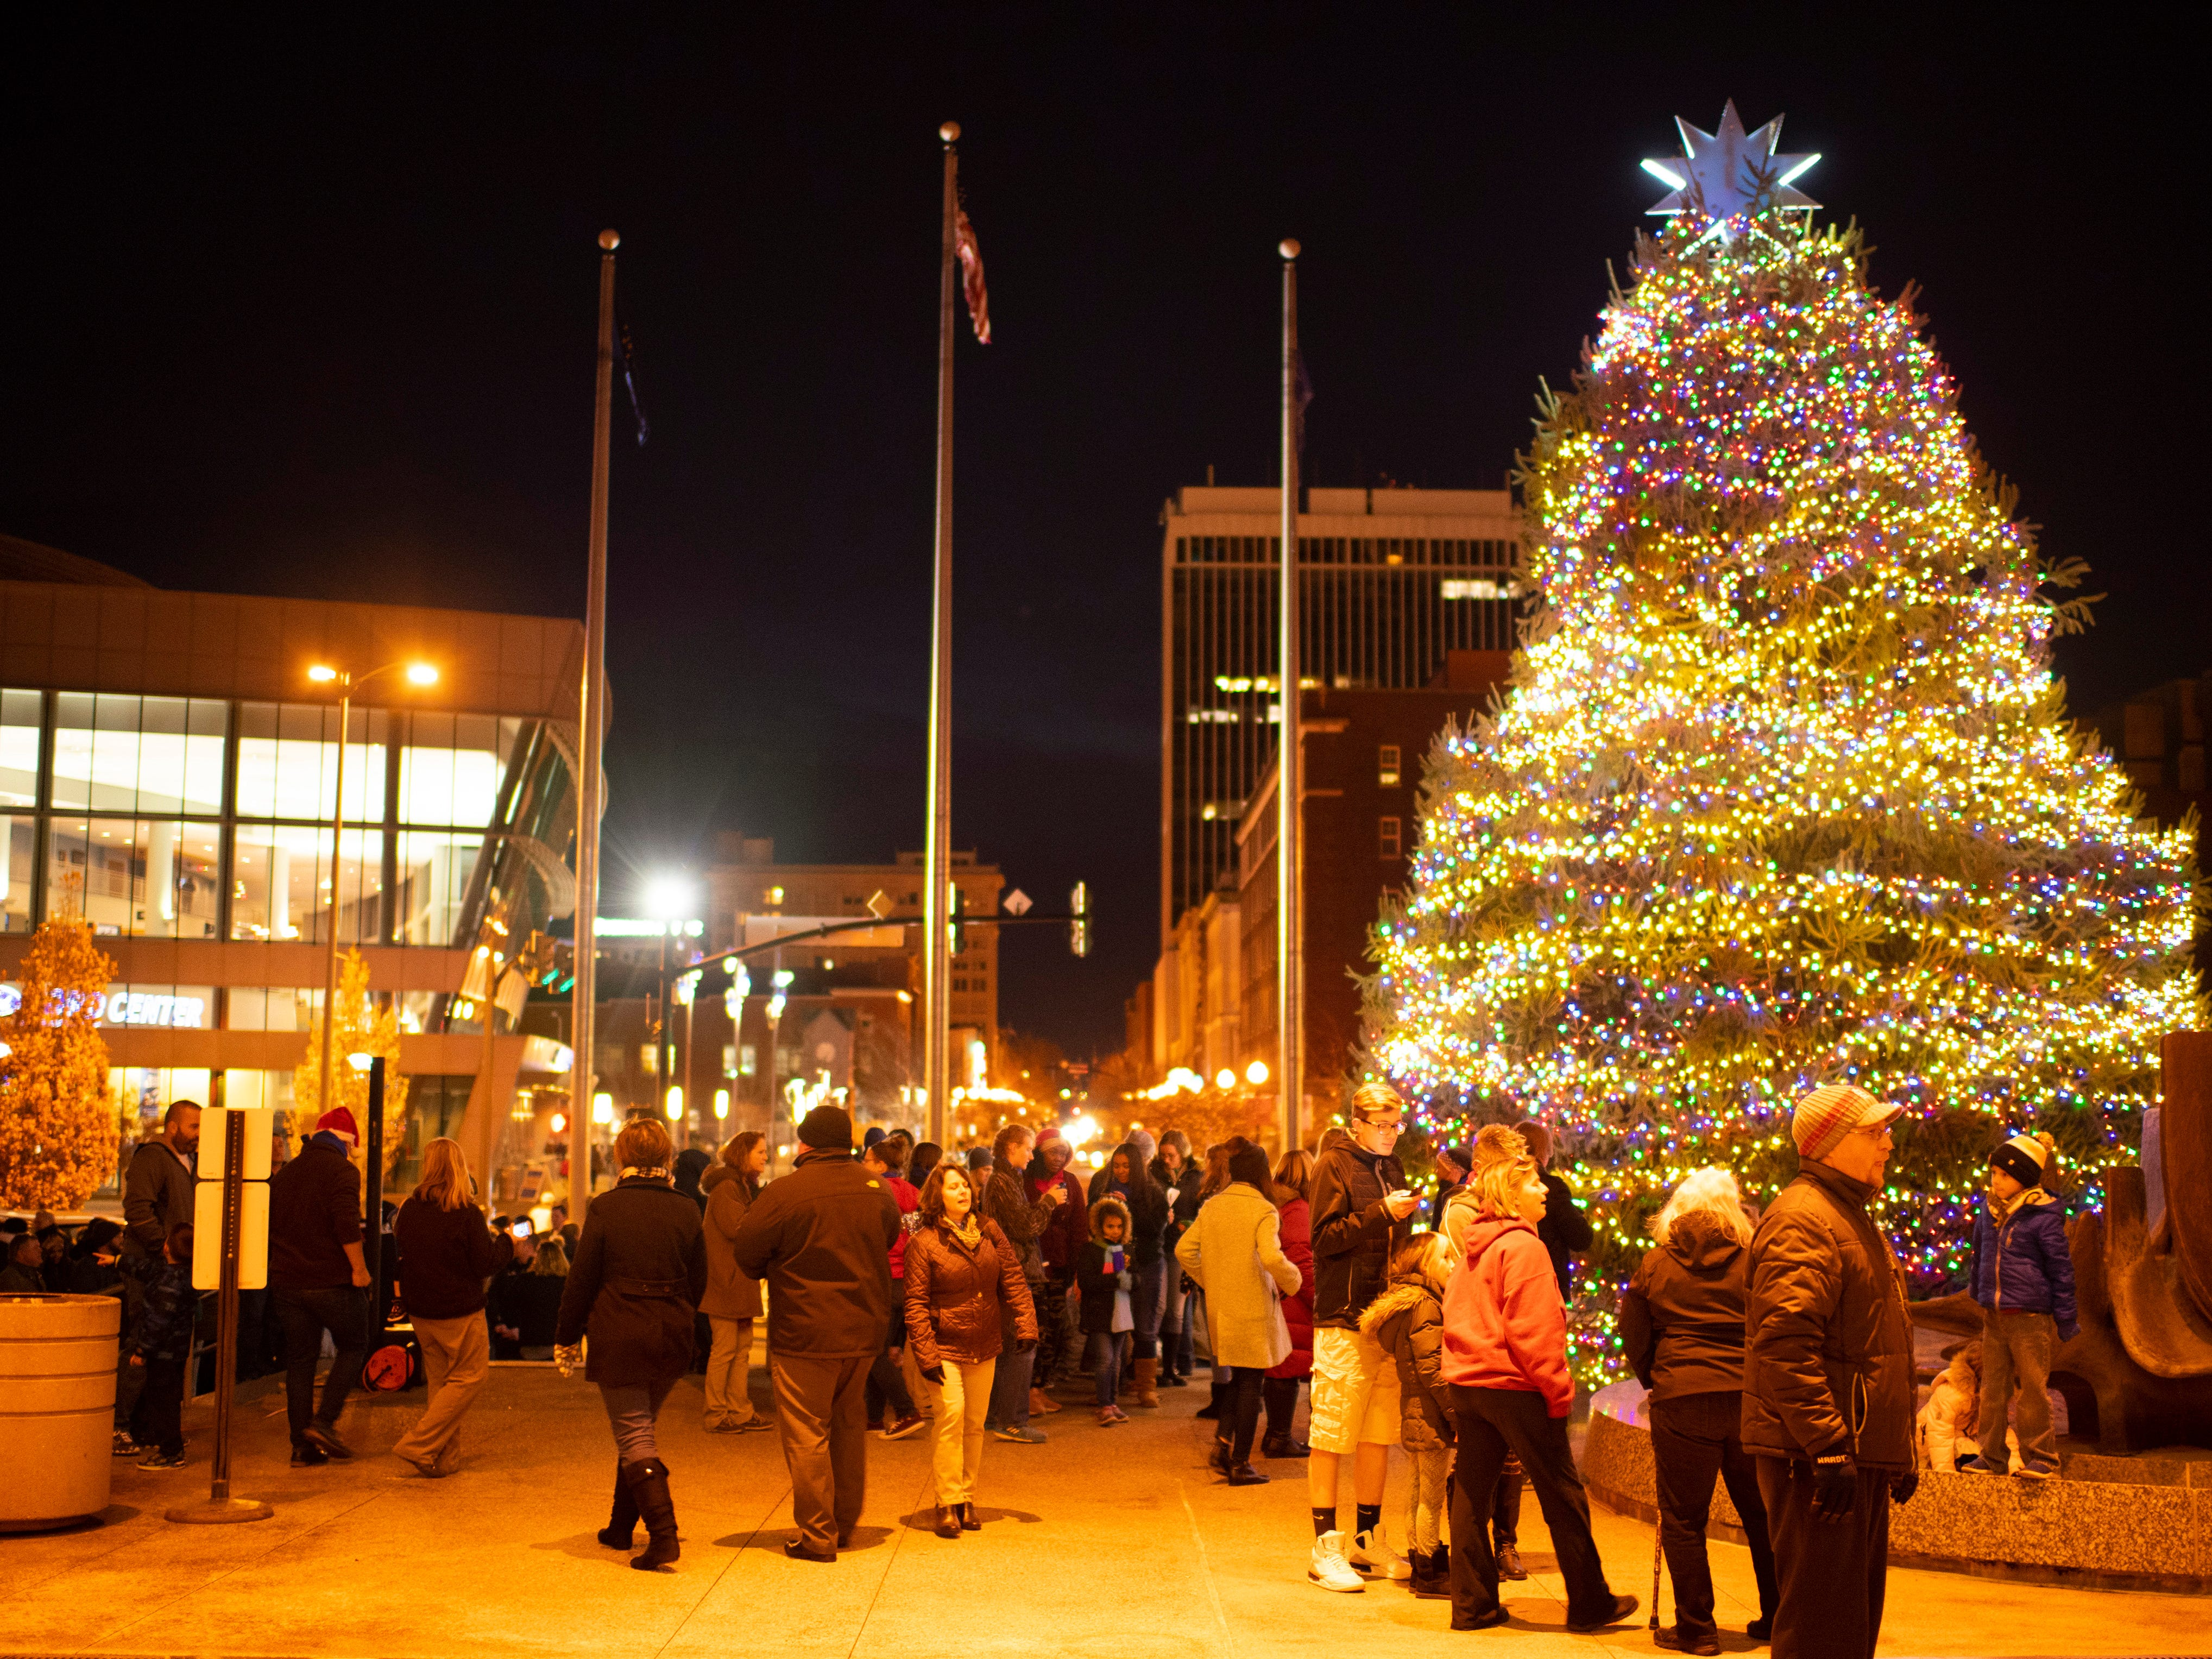 About 200 people showed up for the  City of Evansville's annual Christmas Tree lighting ceremony outside the Civic Center Wednesday evening.